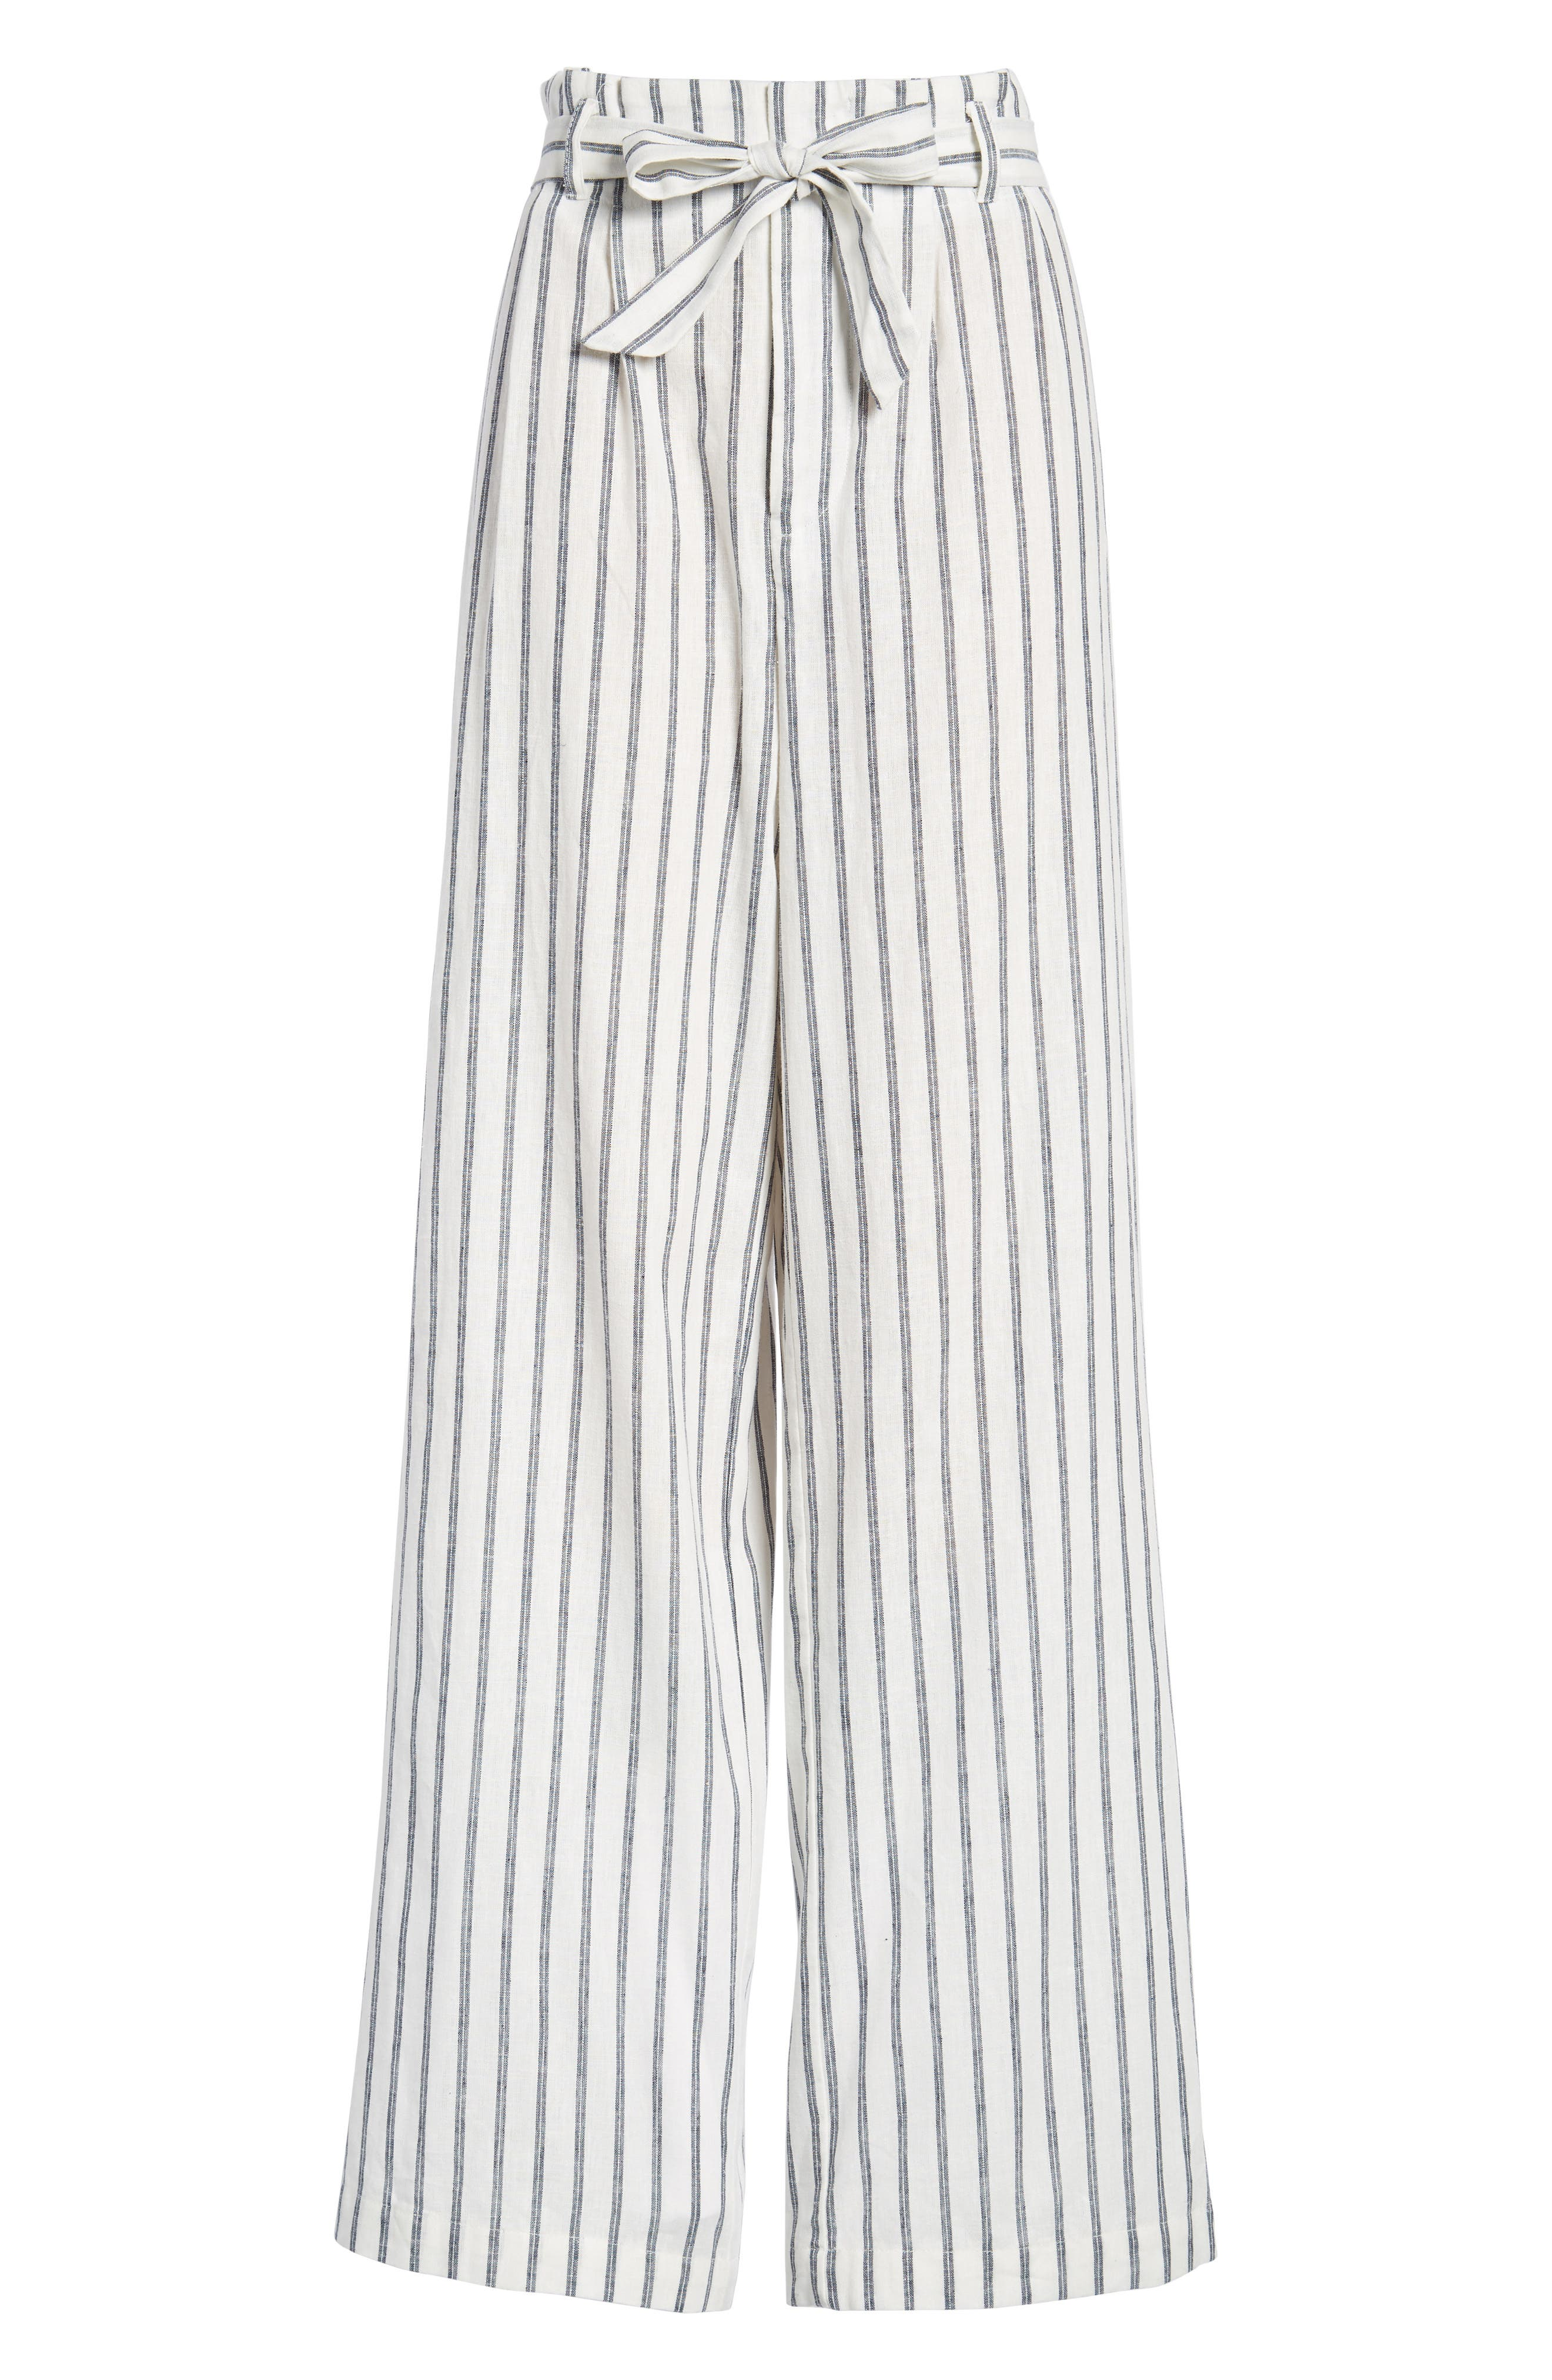 Paper Bag Linen & Cotton Pants,                             Alternate thumbnail 7, color,                             Ivory / Blue Stripe